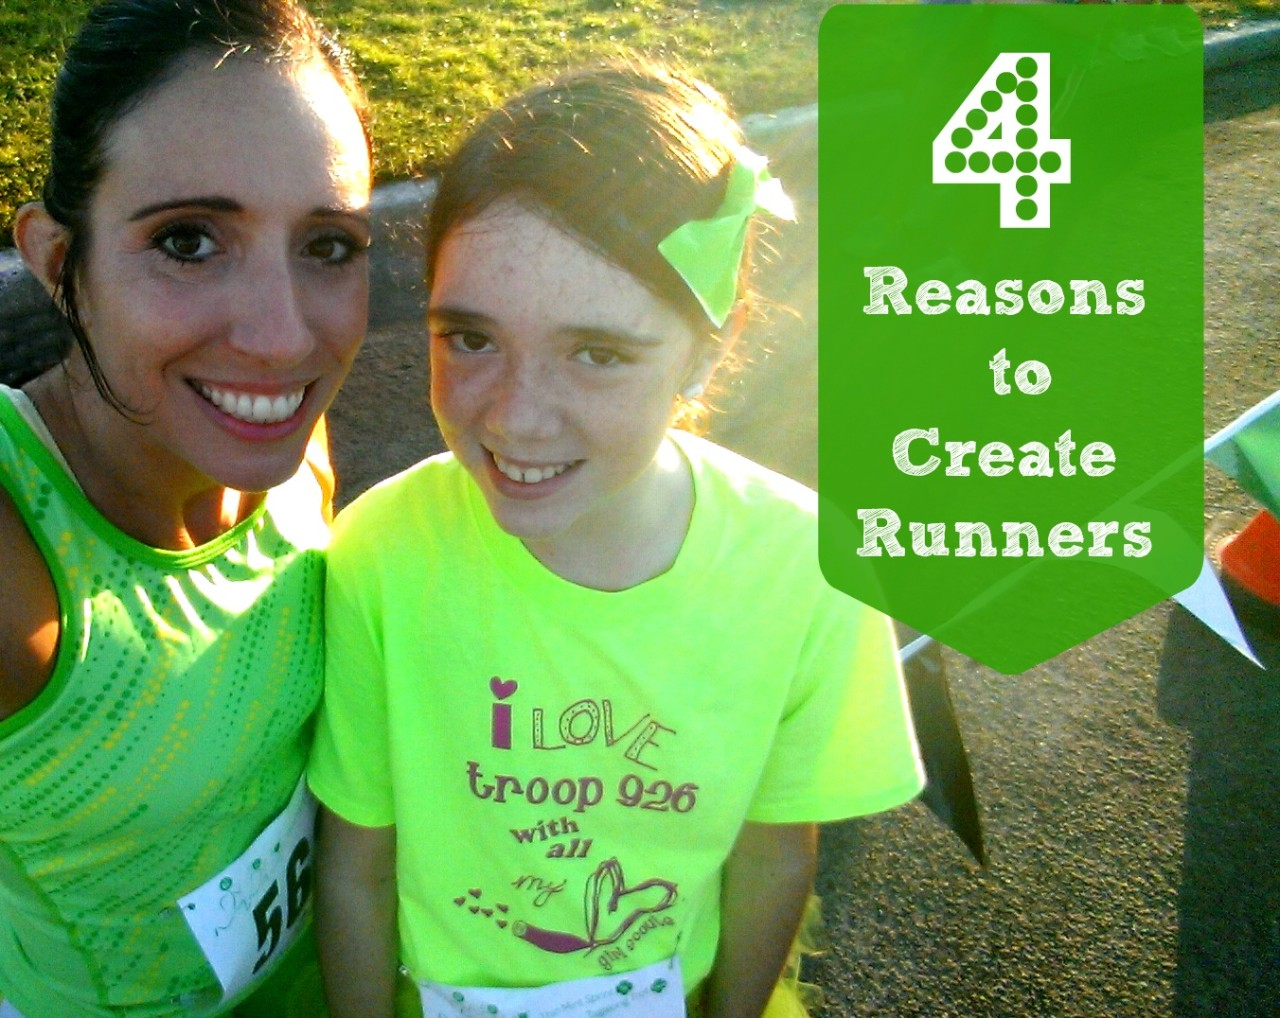 Four Reasons to Create Runners